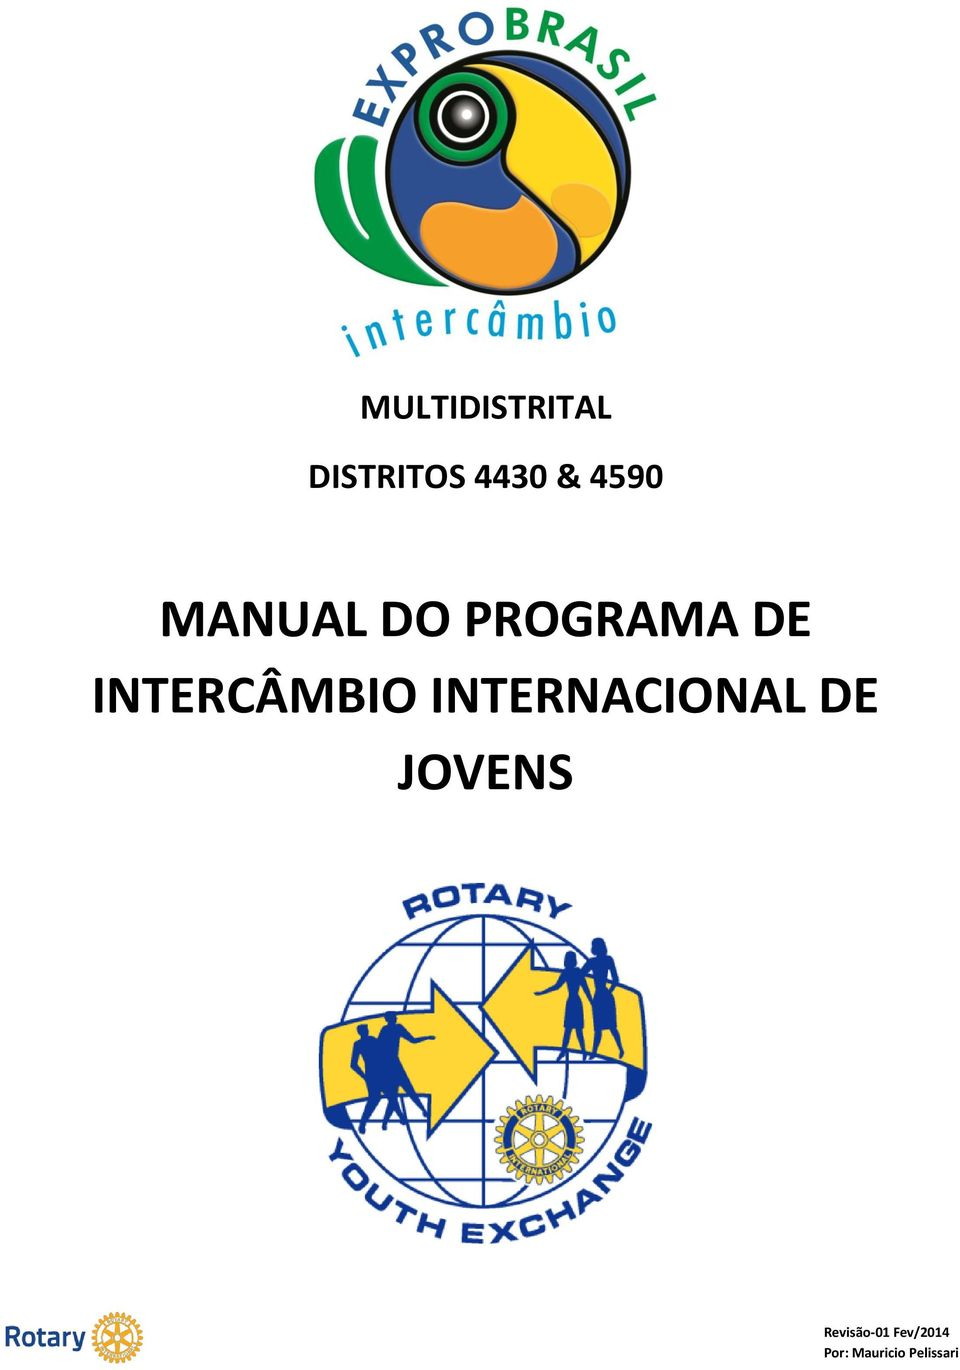 INTERCÂMBIO INTERNACIONAL DE